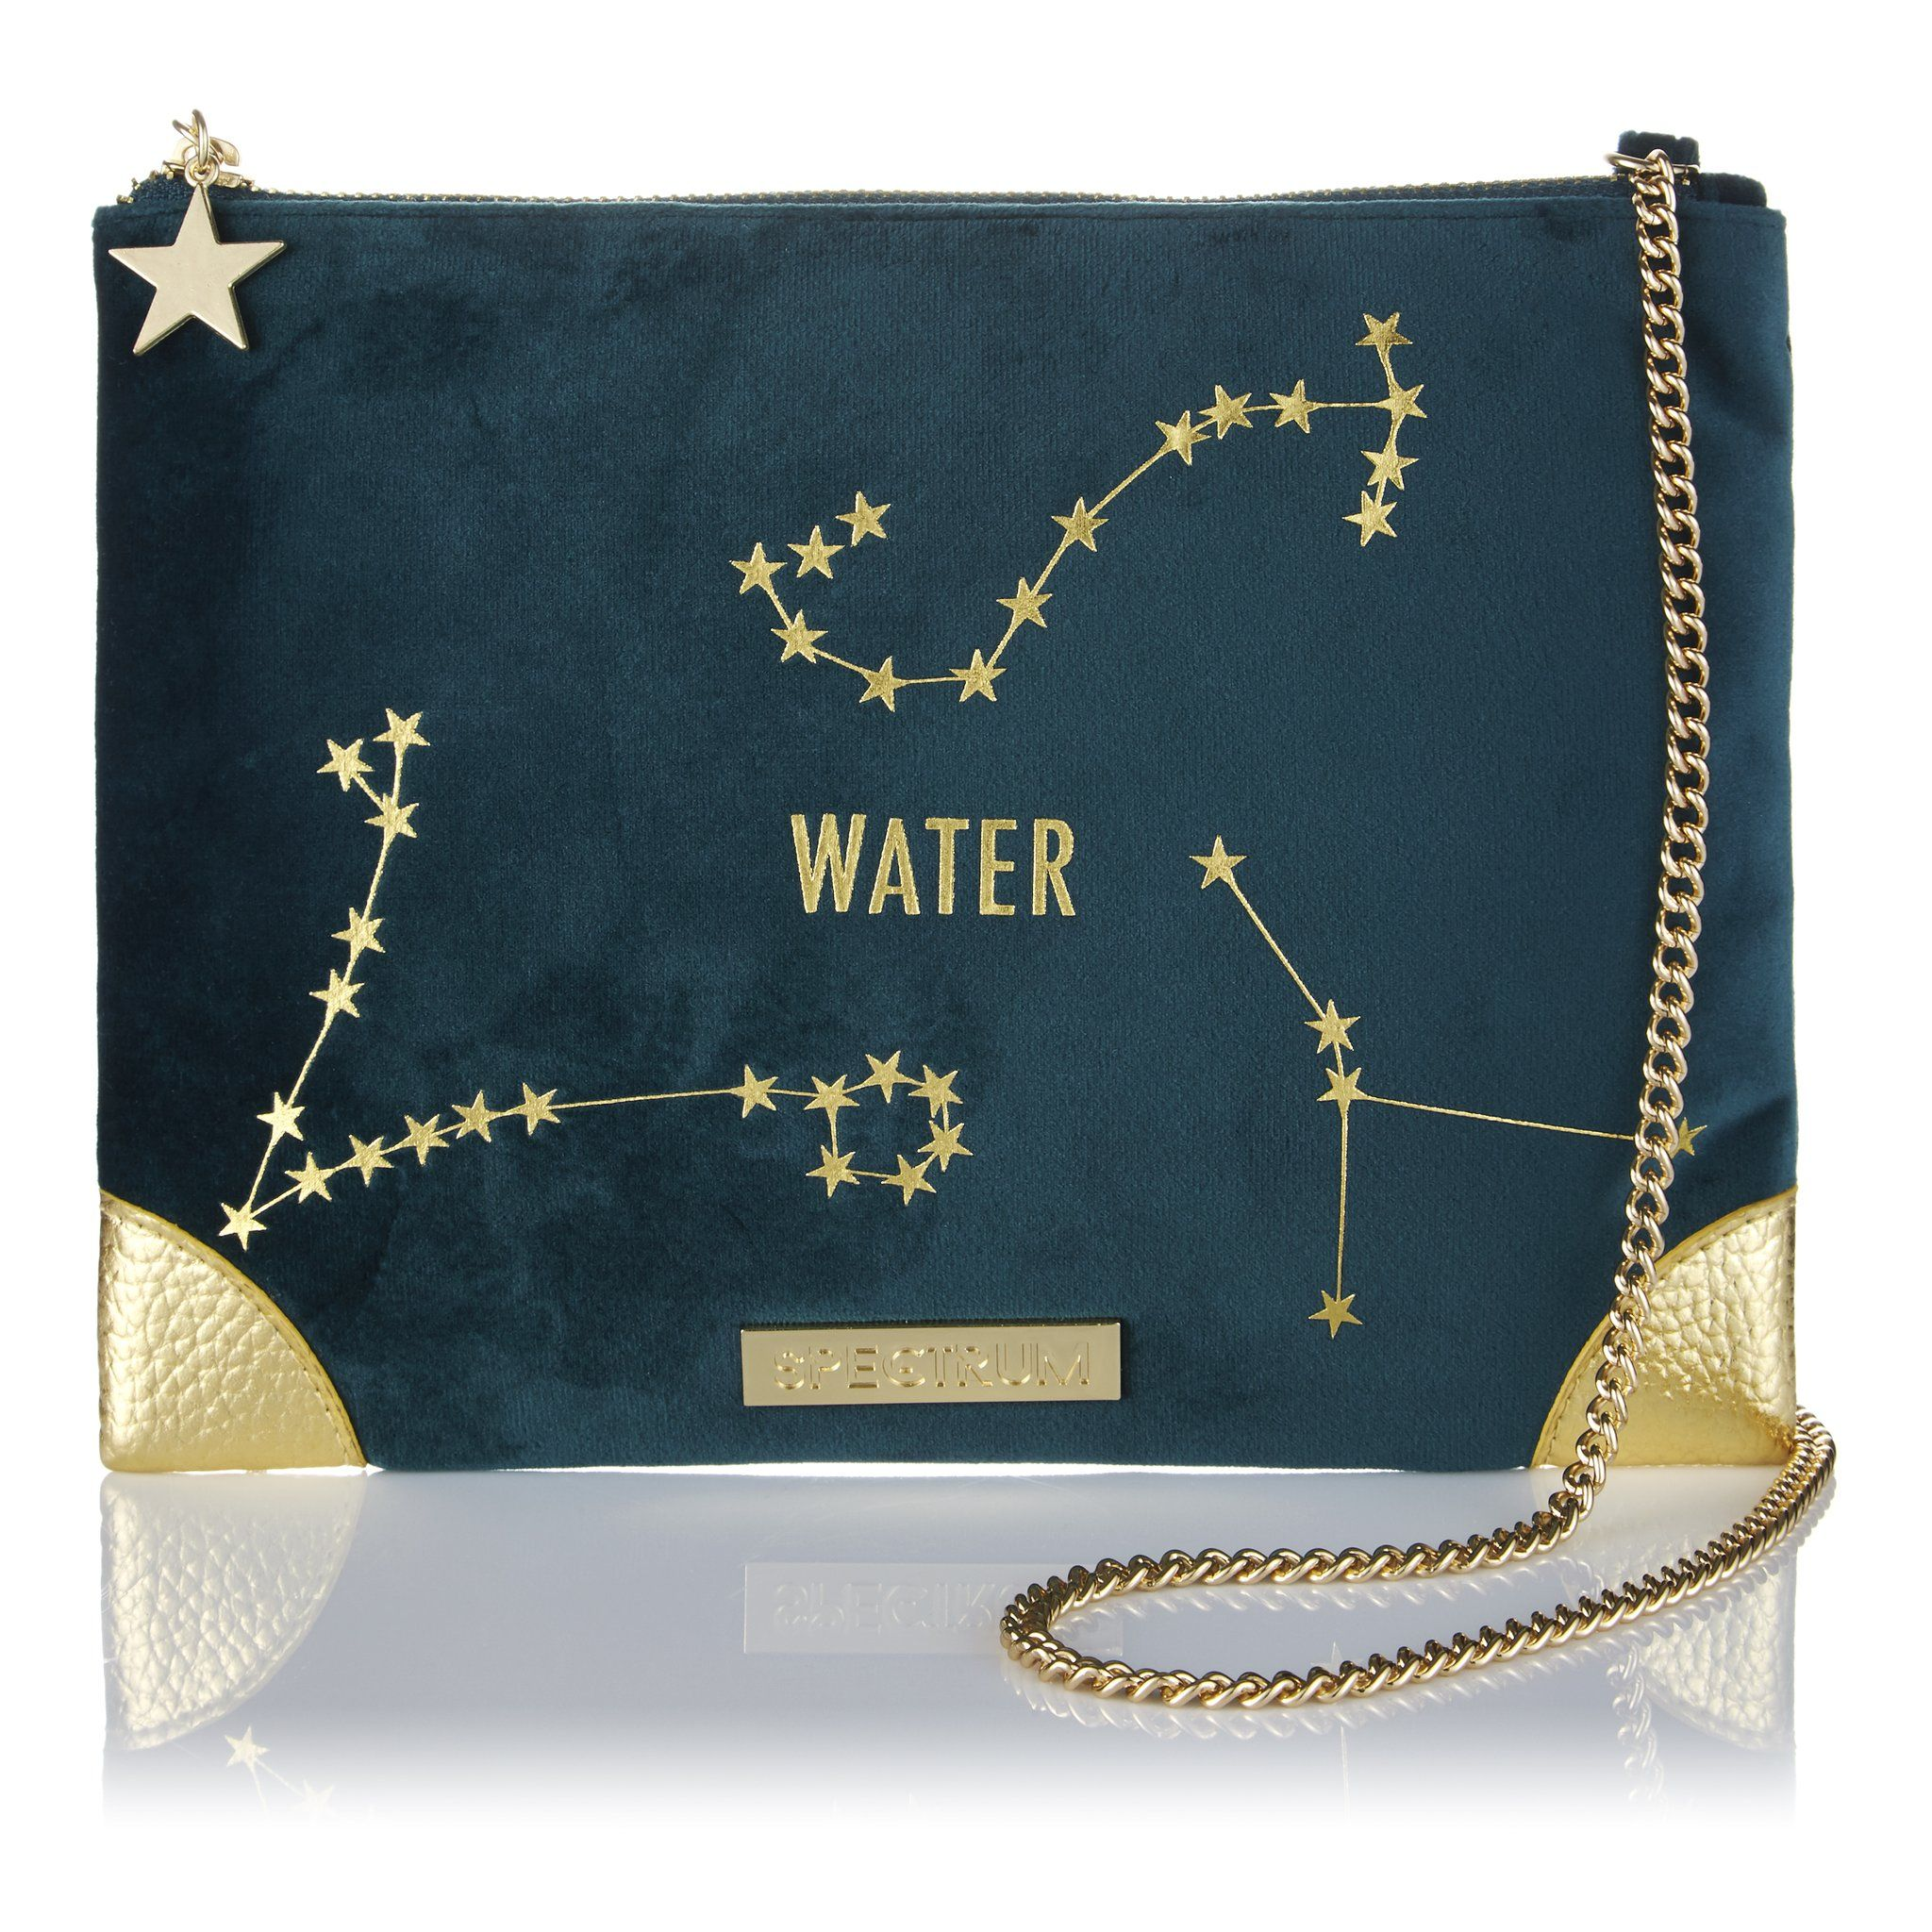 Spectrum Zodiac Collection Water brush, Brush set, Pouch bag